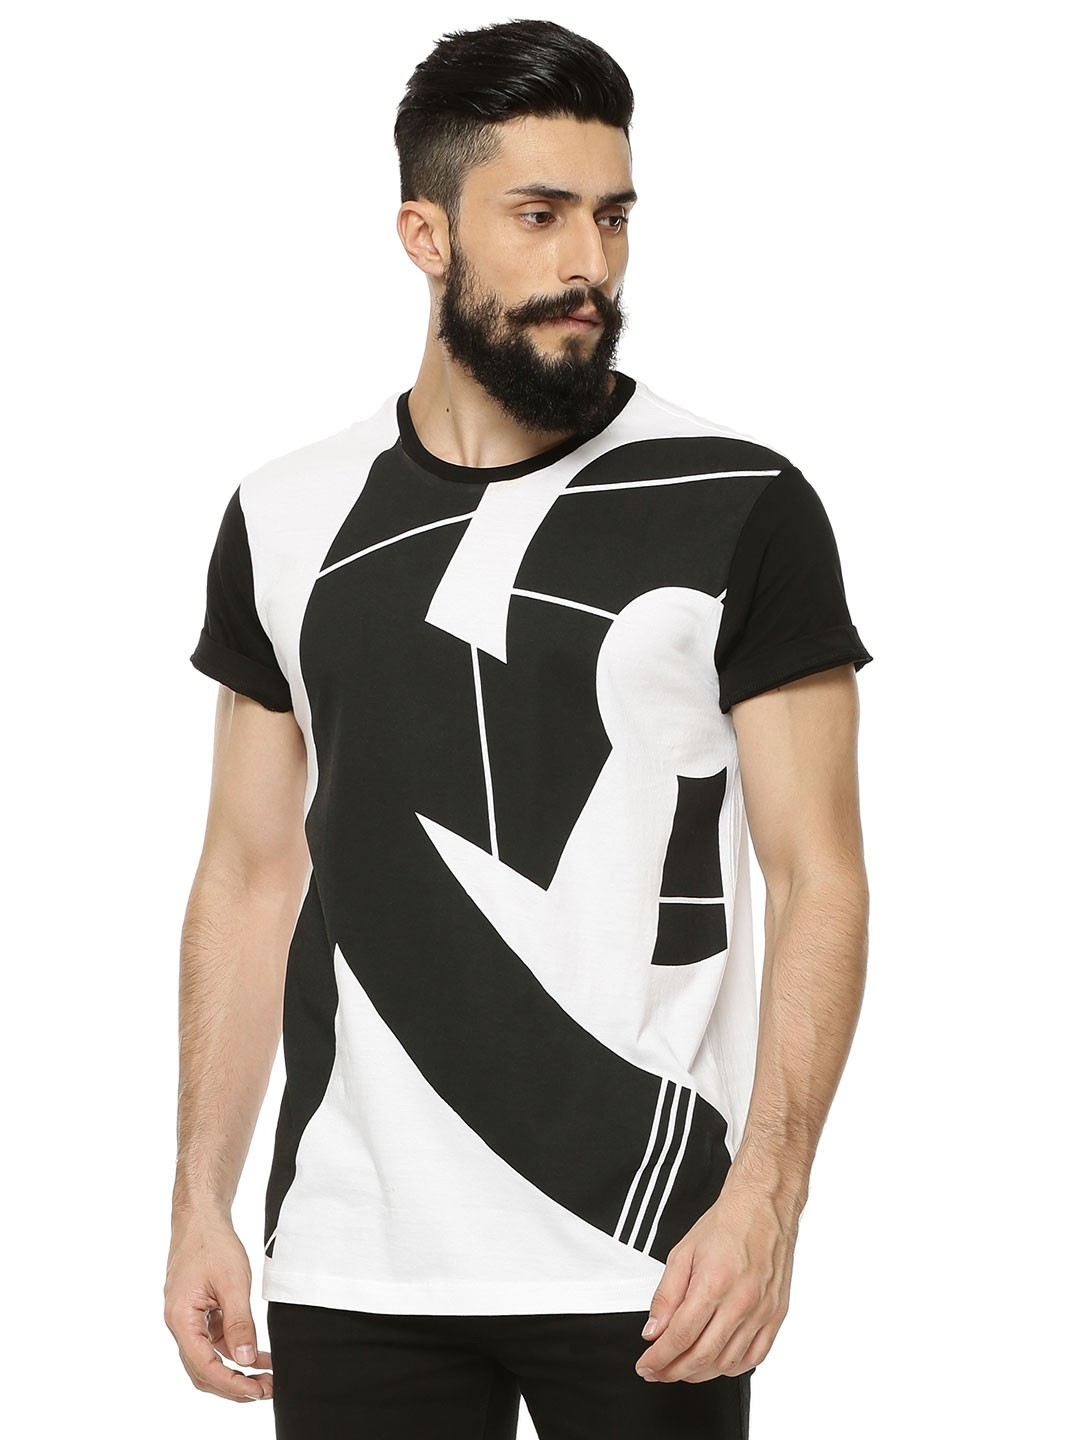 Buy KOOVS Number Printed T-shirt For Men - Men's White T-shirts ...